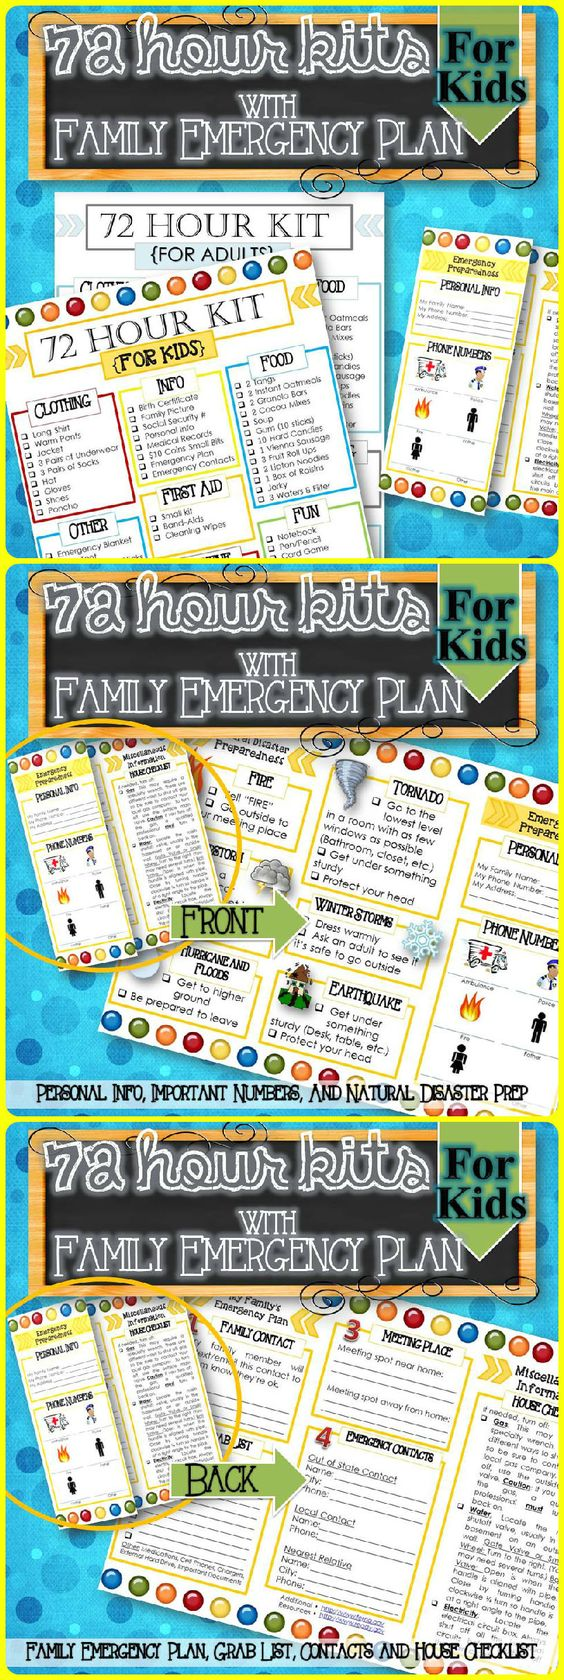 """A simple way to help children and your family be ready for an emergency or natural disaster. Includes, 72 Hour Kit for Children/Babies and adults and a Family Emergency/Natural Disaster Preparedness Brochure for Personal Info, Important Phone Numbers (Police, Fire, etc.), Family Emergency Plan (Contacts, Where to Meet, etc.), """"Before We Leave"""" Grab List, House Checklist (How to Shut off Gas, Water, etc.), What to Do in a Natural Disaster (Fire, Tornado, etc.)."""